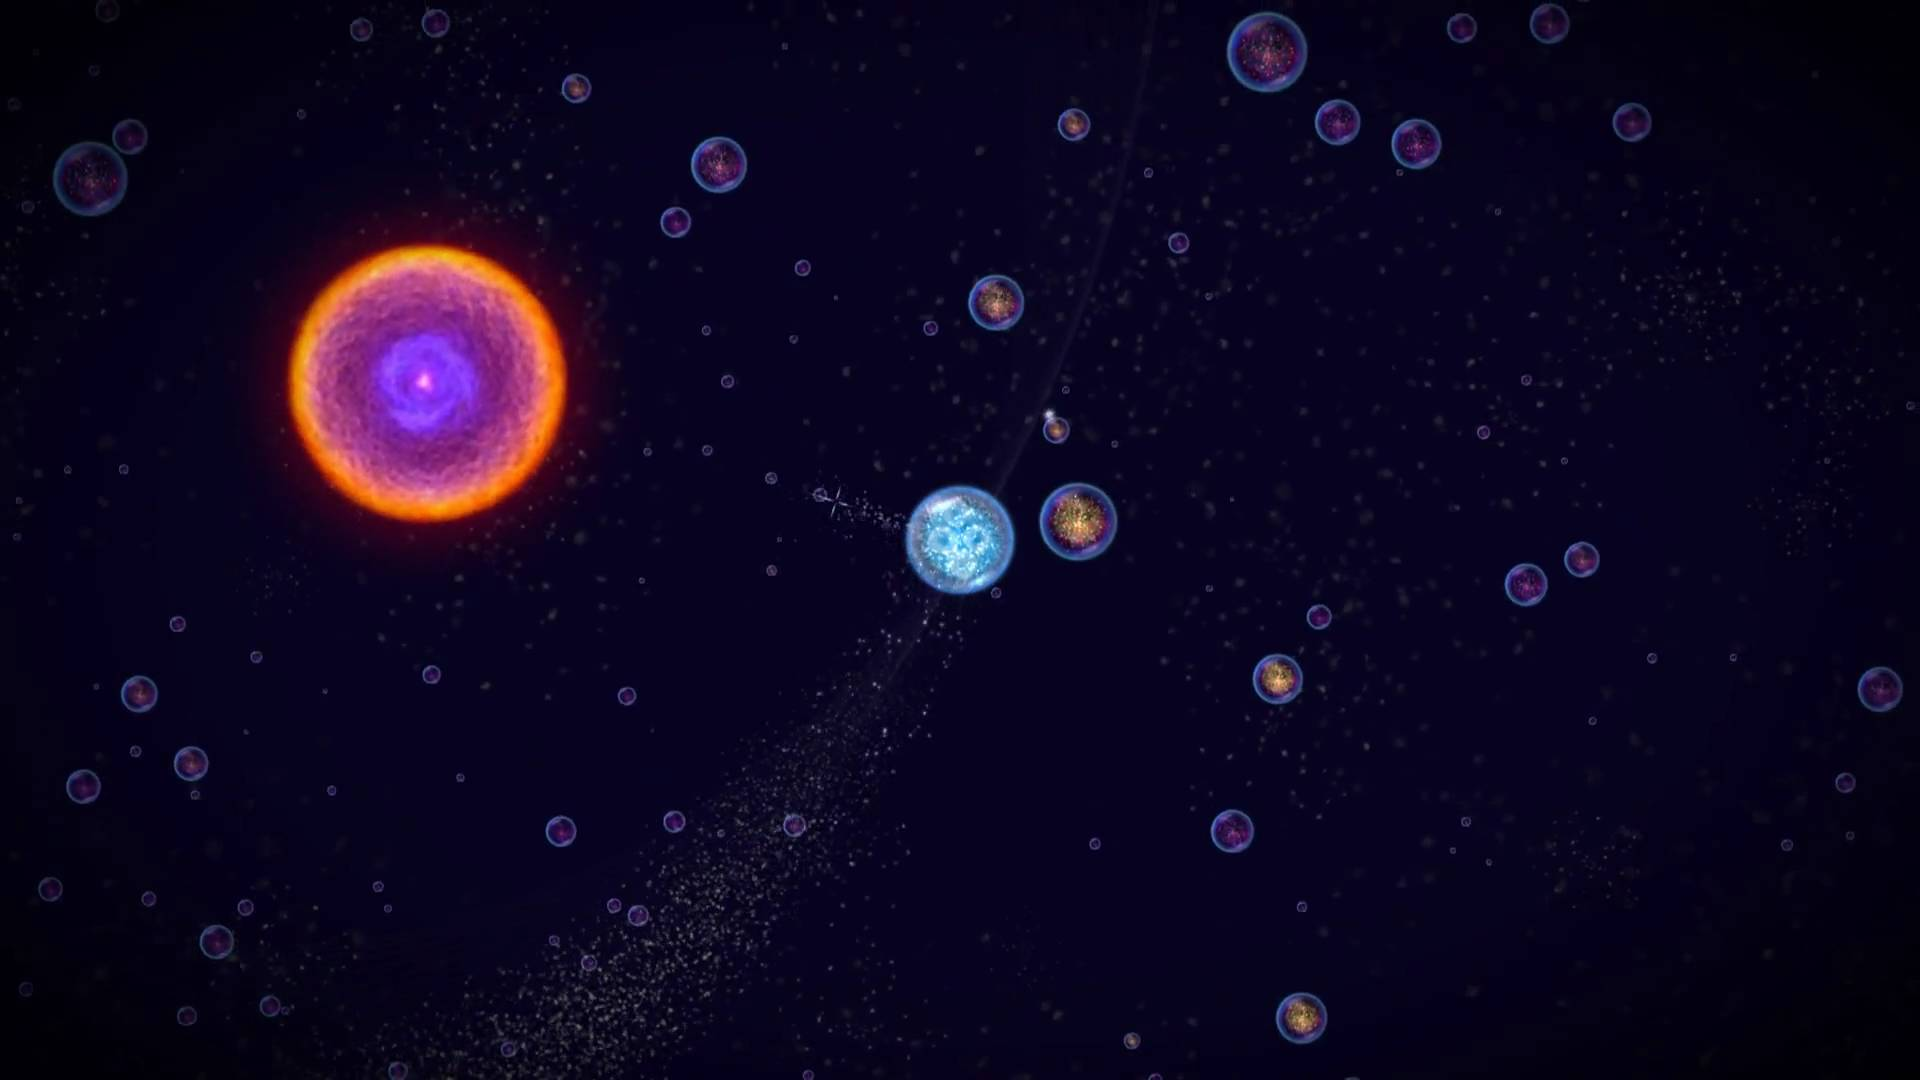 Classic Game Osmos Will Soon Be Updated with 64-Bit Support, Other New Features